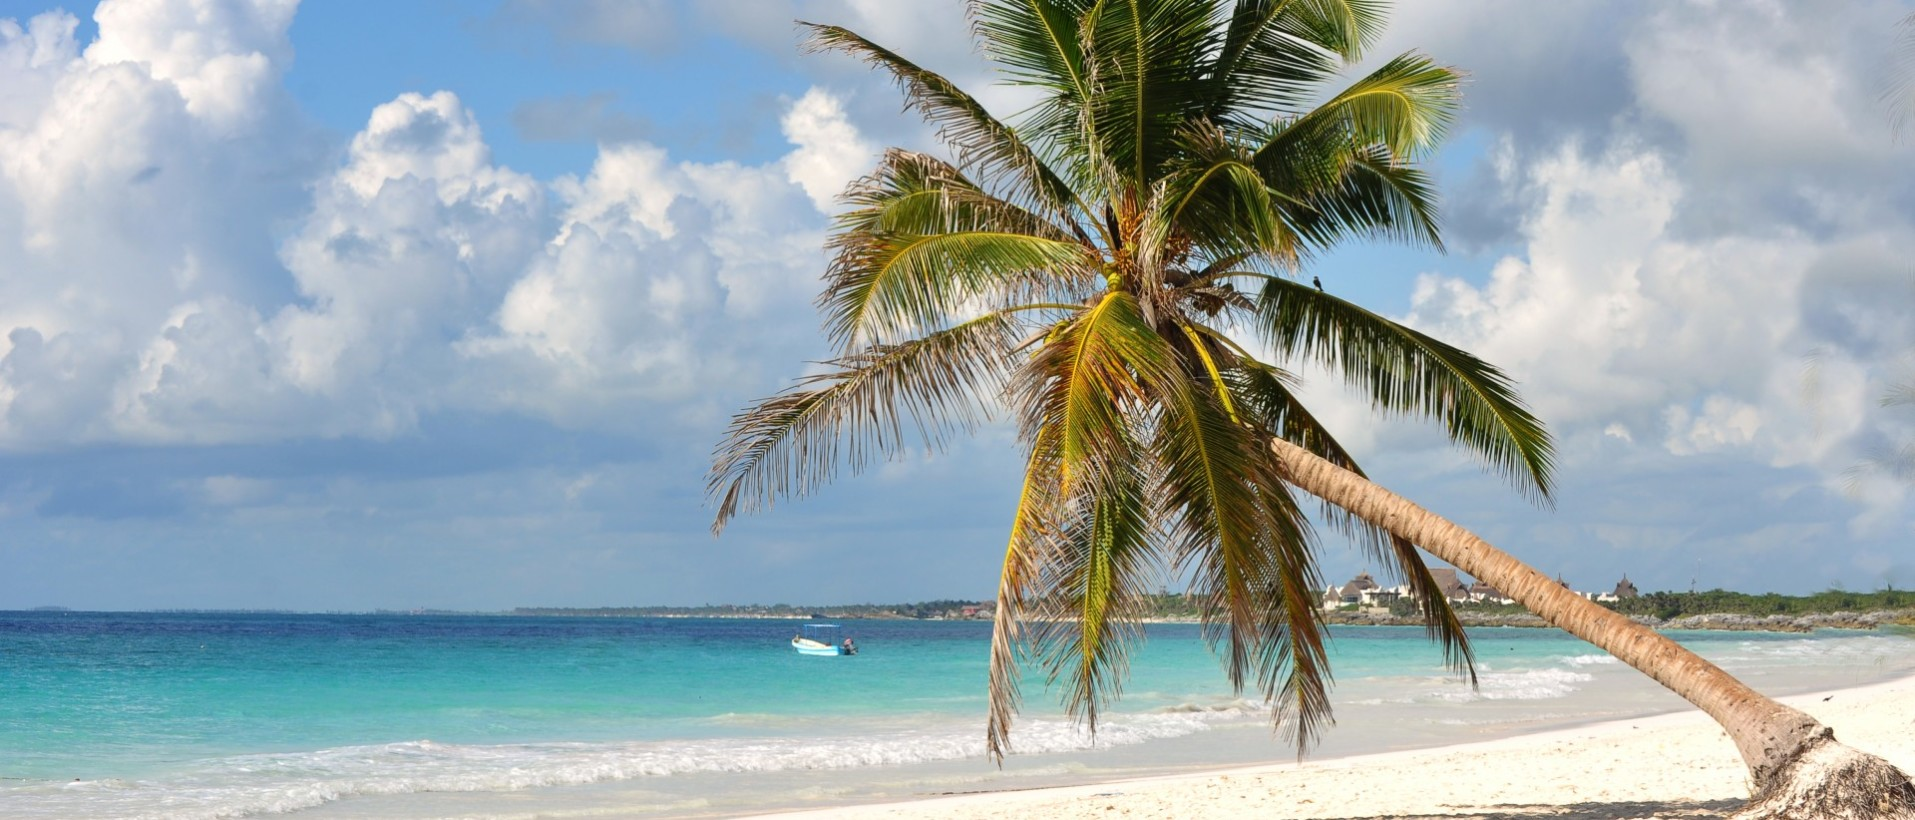 Hotels In Tulum Mexico On The Beach